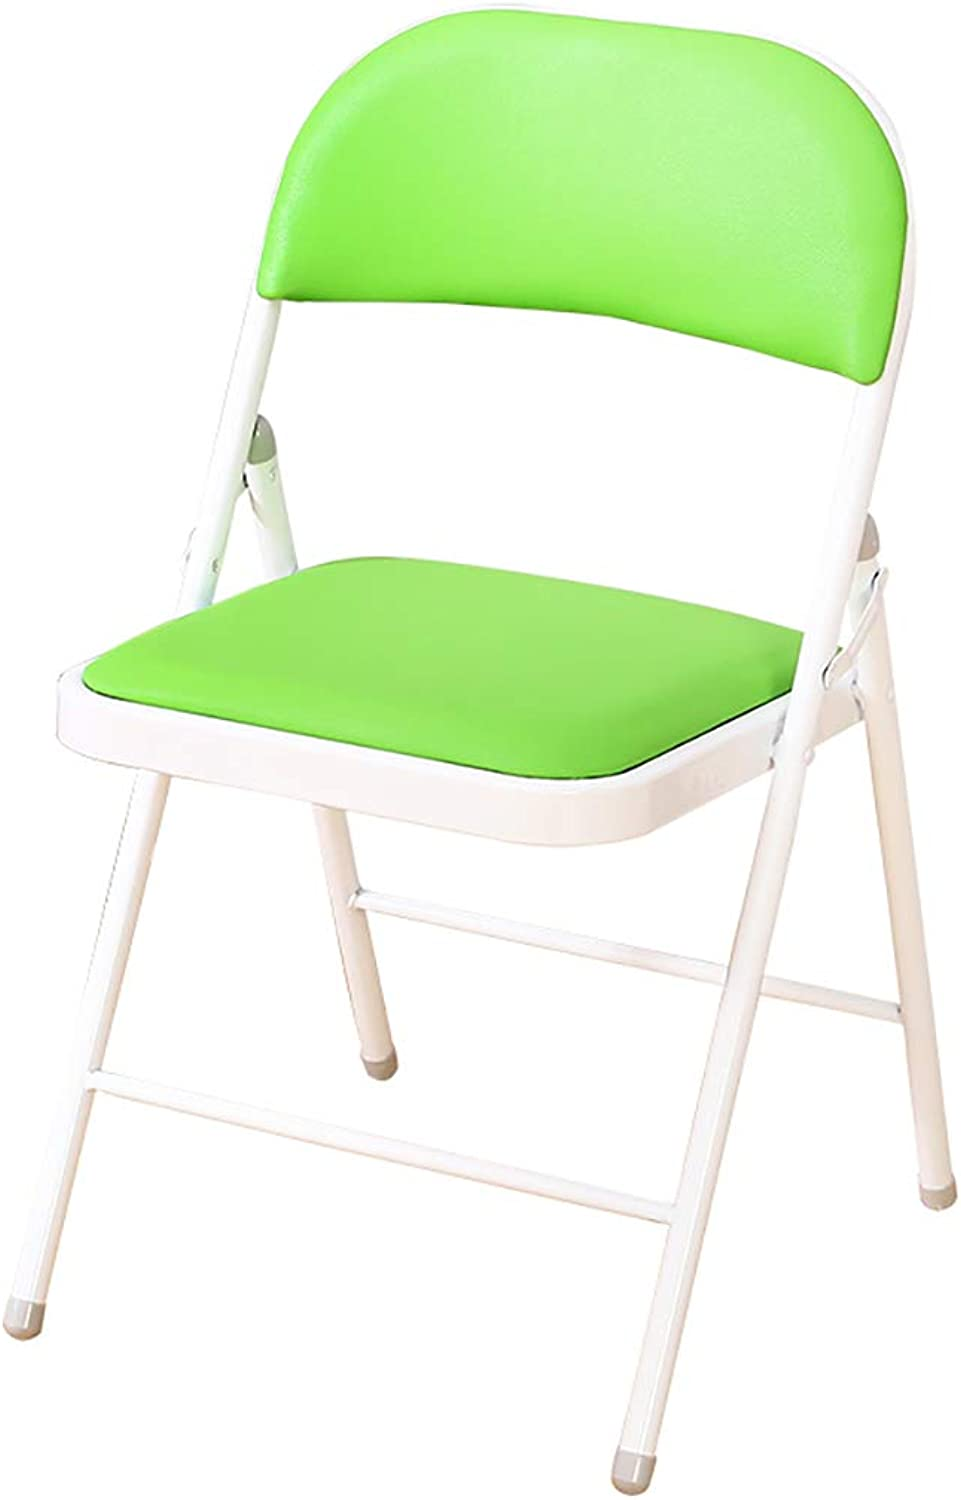 XHLZDY Folding Chair, Folding Chair Computer Chair Staff Chair Office Home Meeting Training Seat Leisure Chair Back Folding Chair (color   Green)